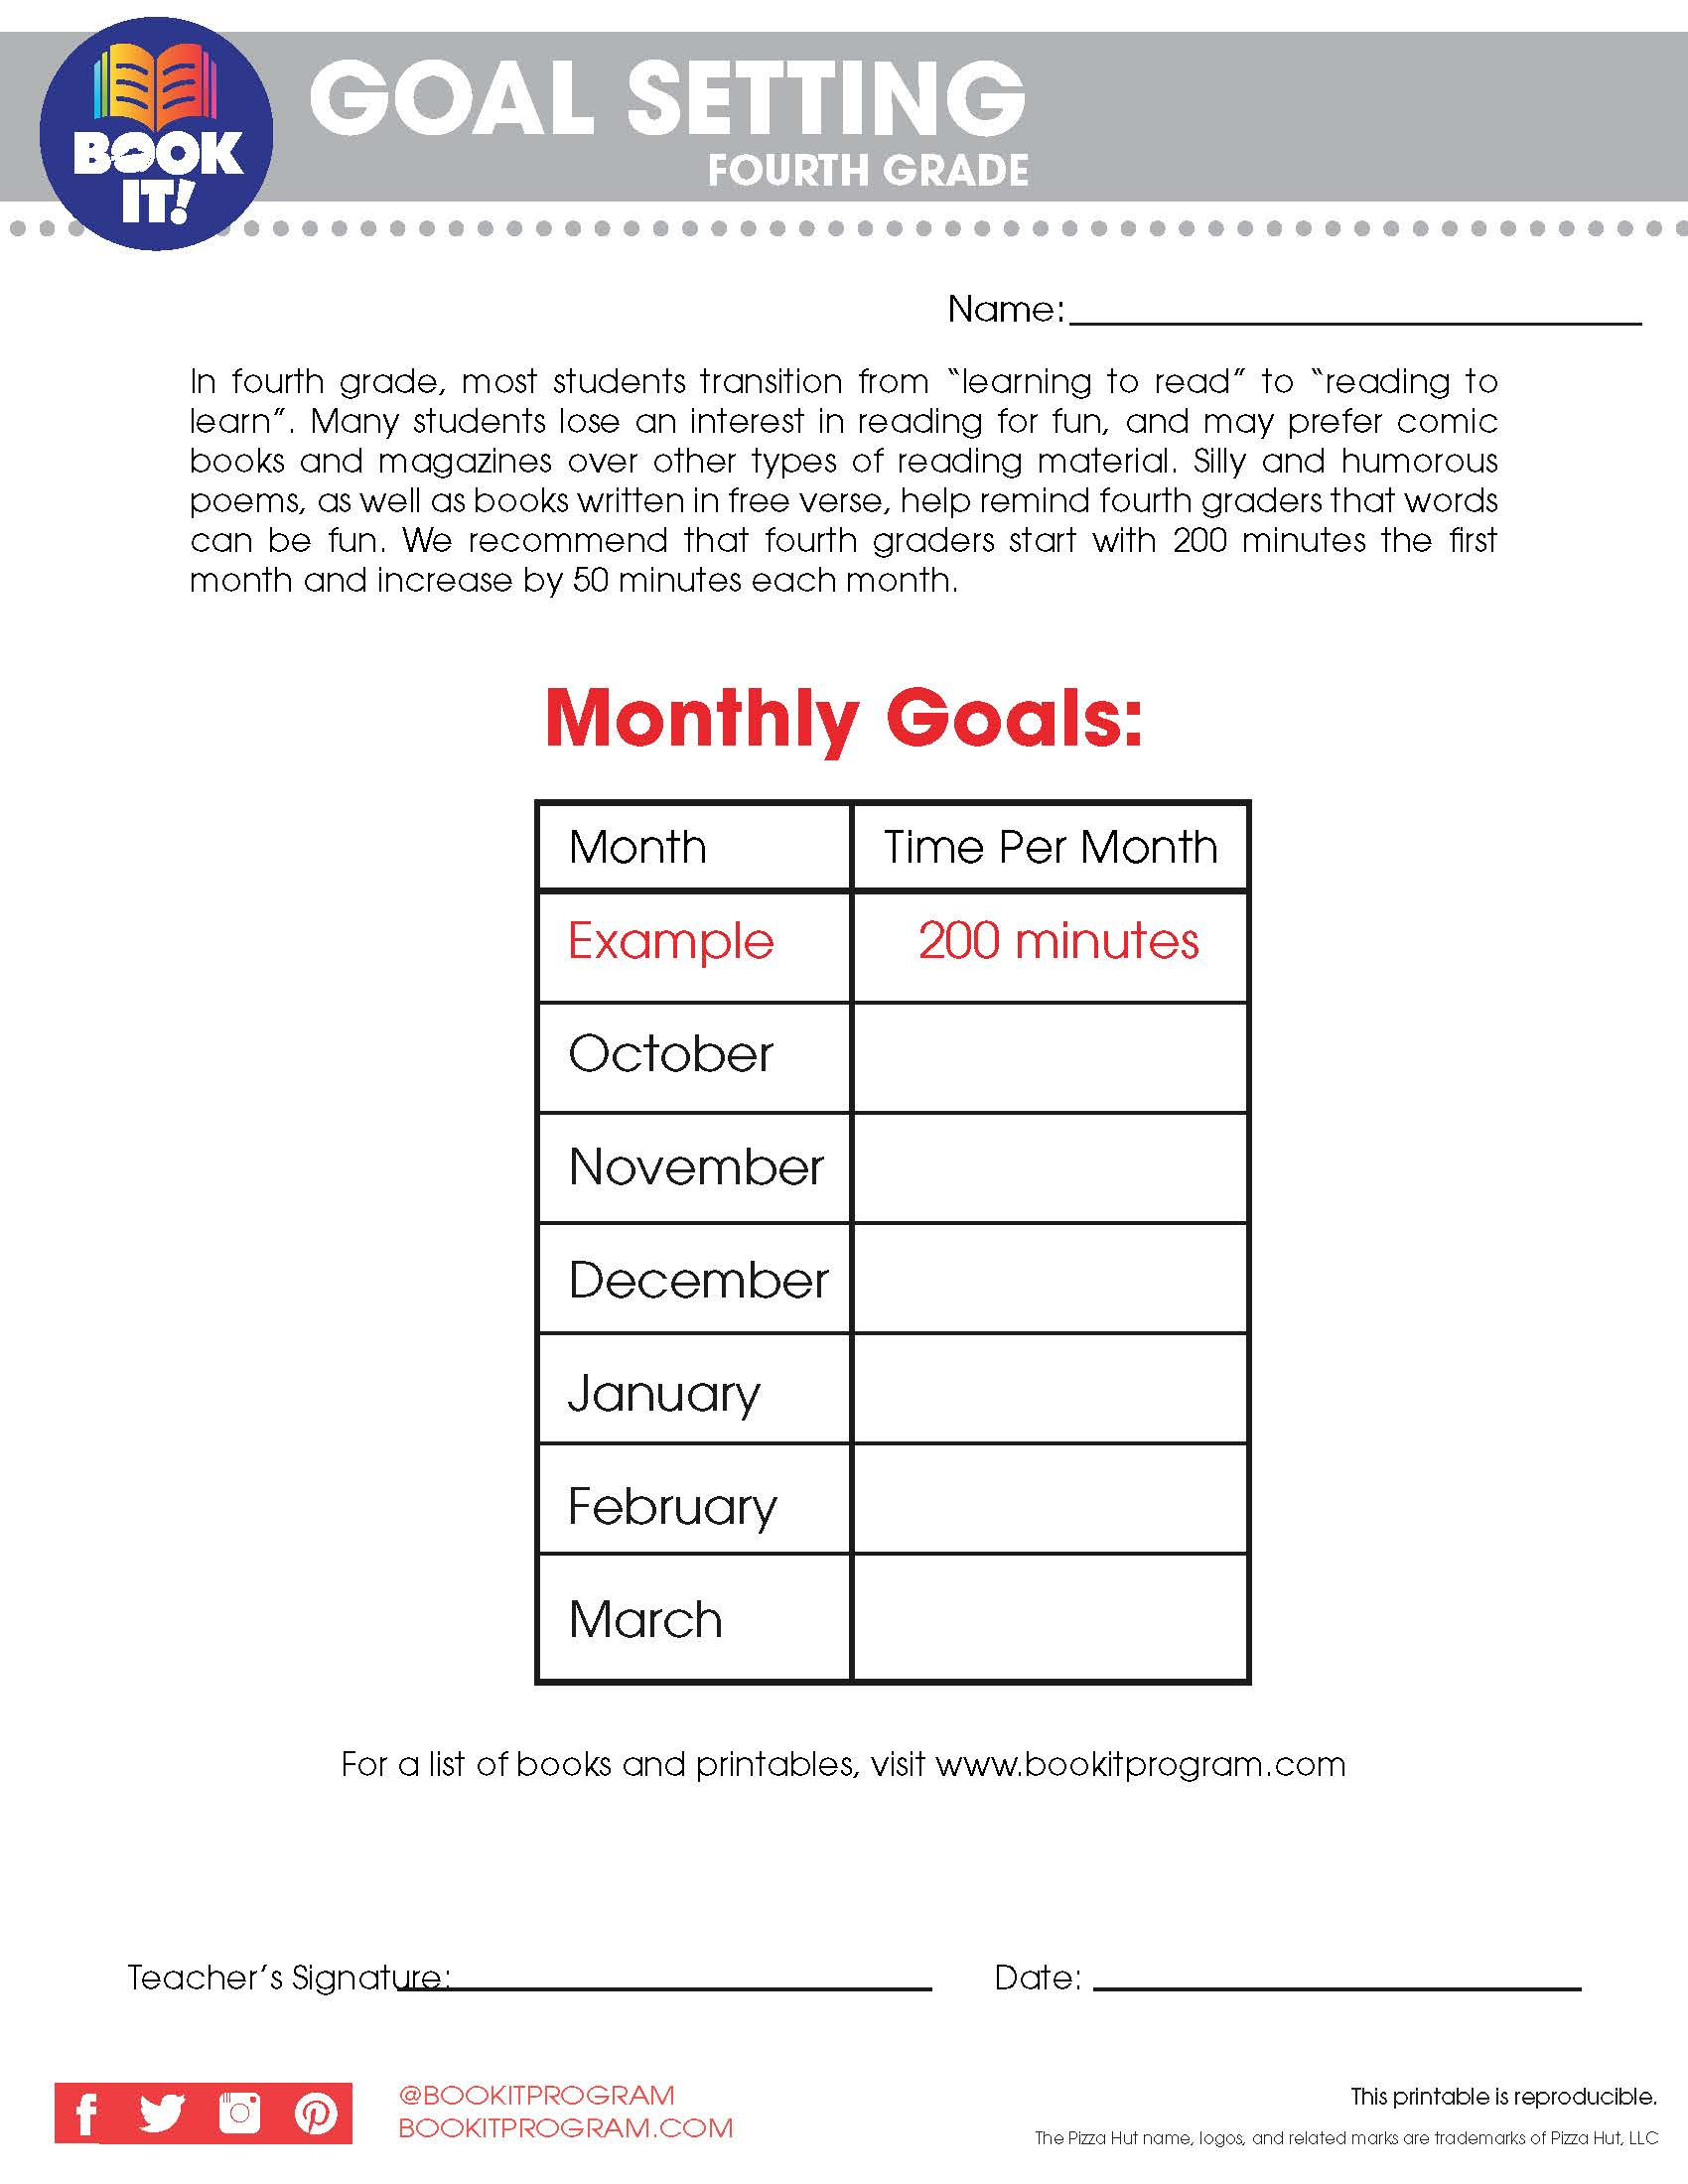 Goal Setting-Fourth Grade